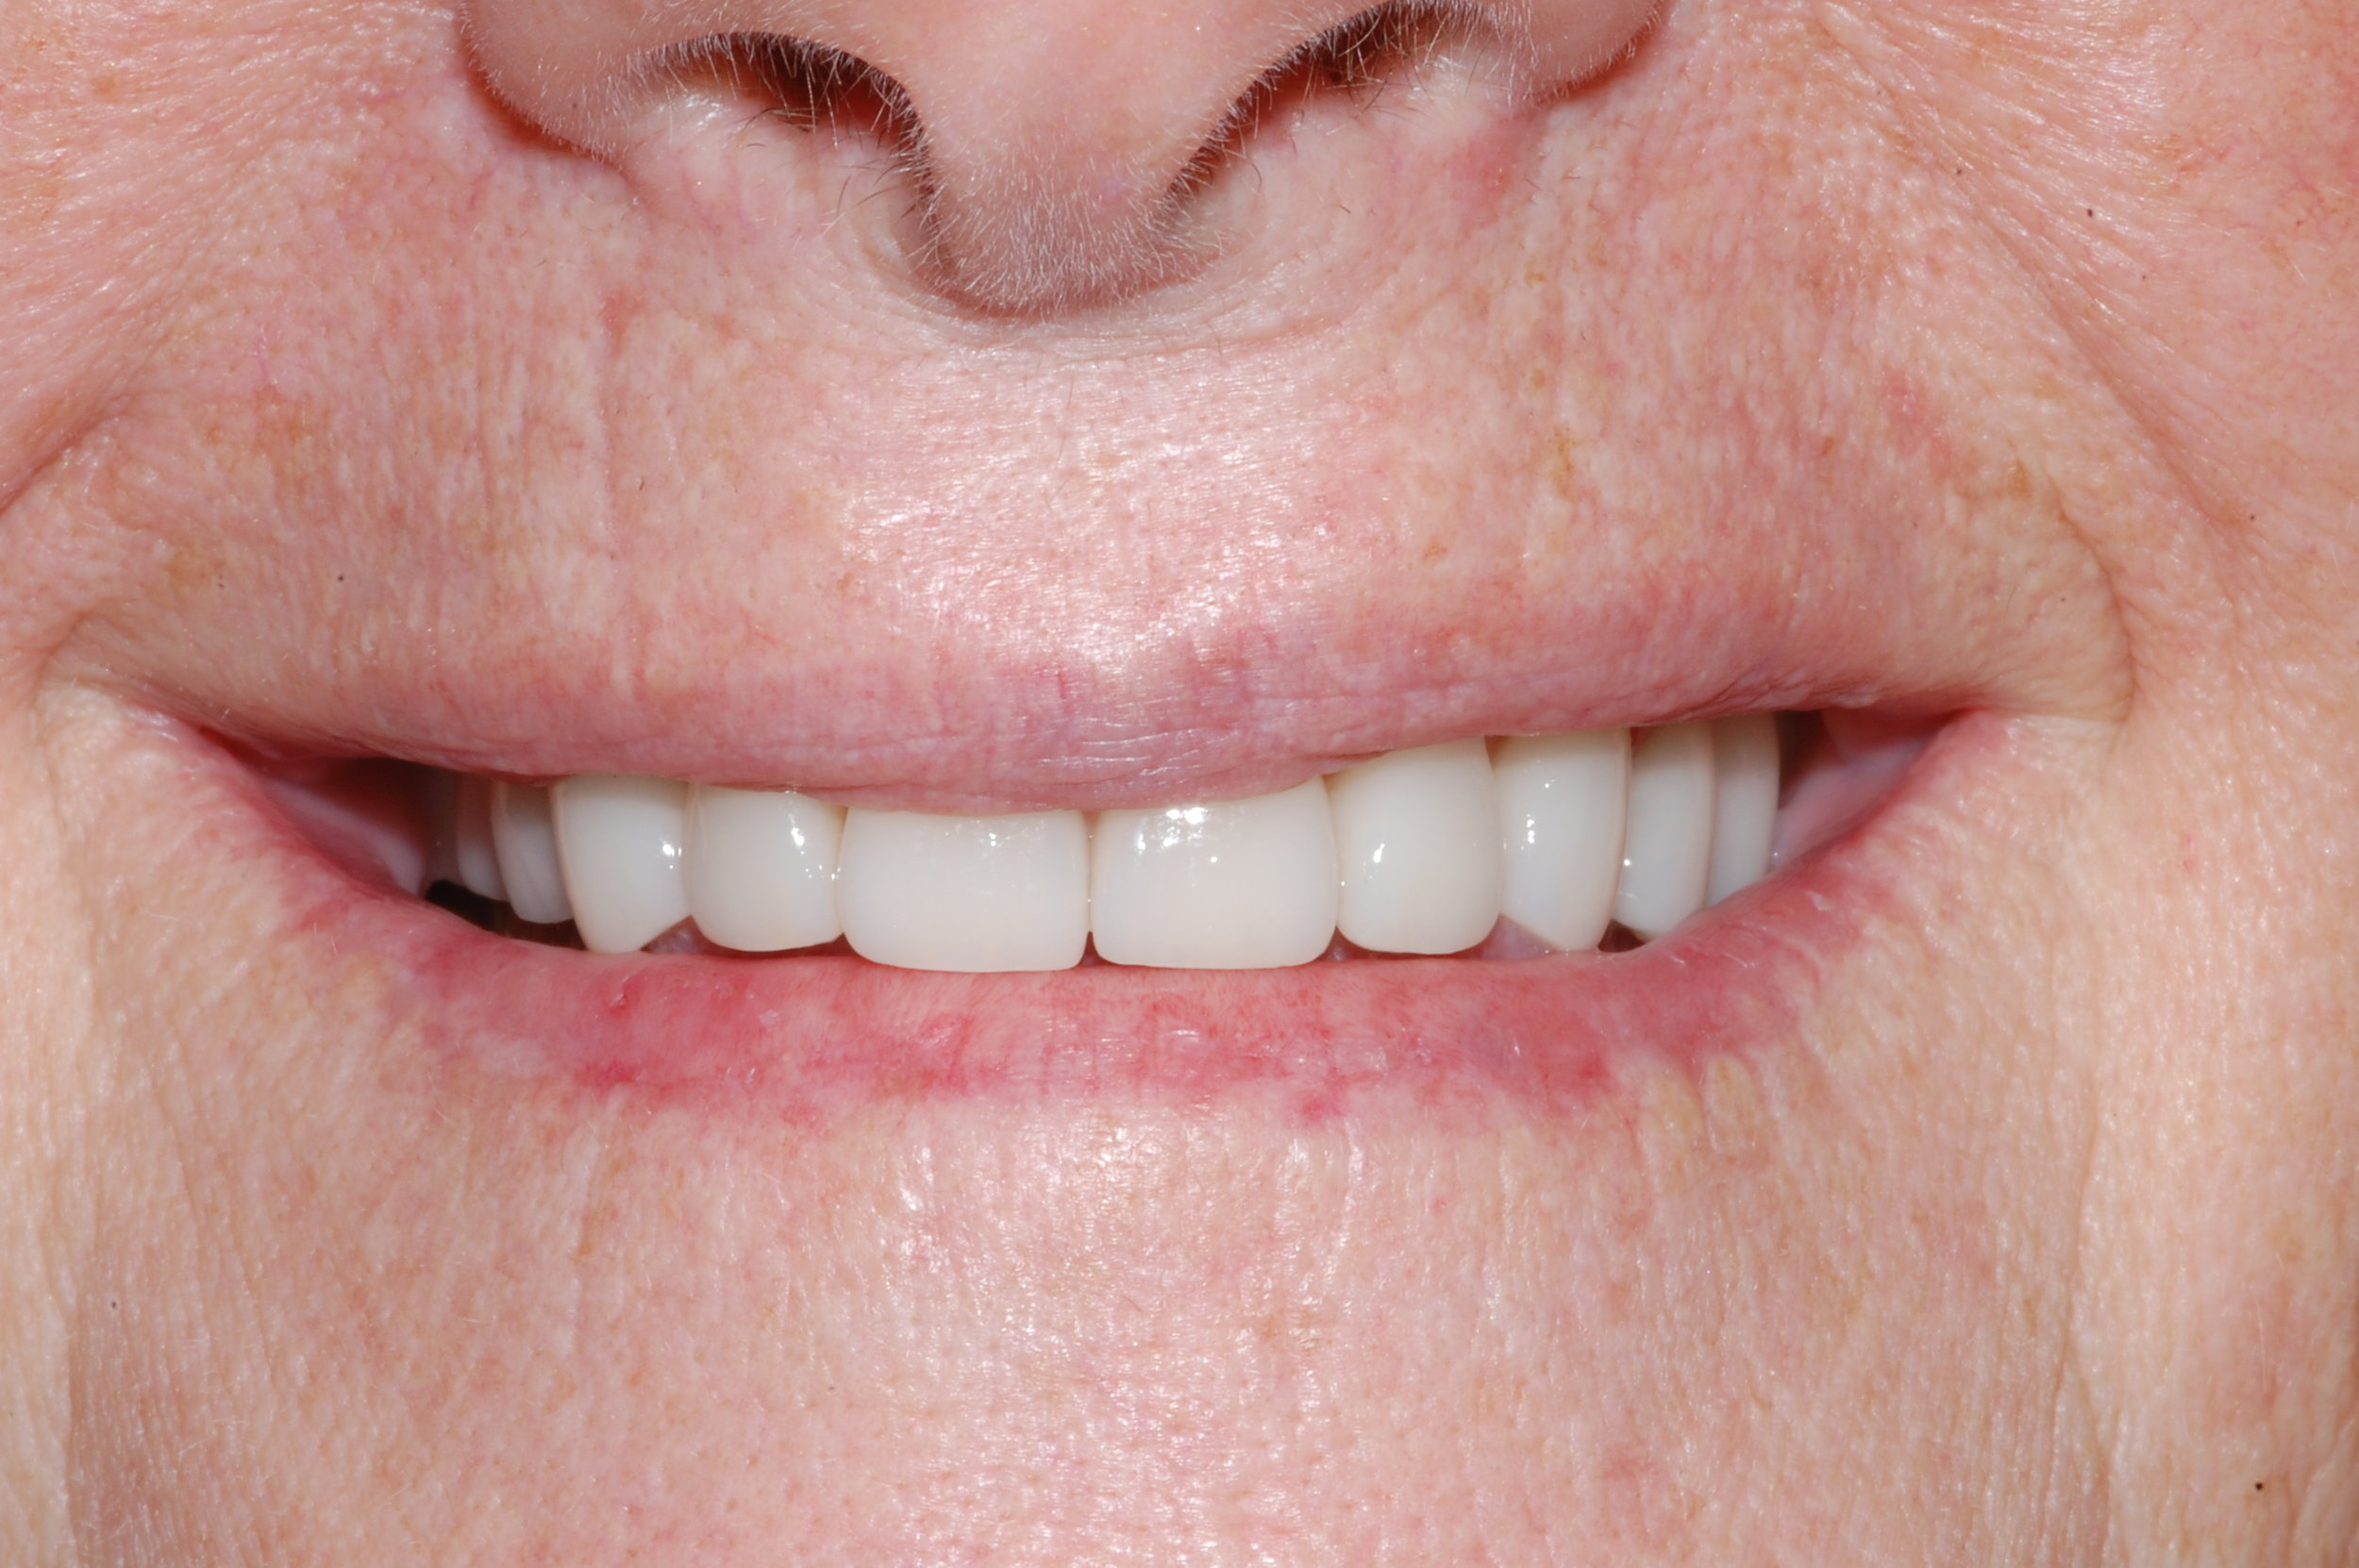 Missing Upper and Lower Posterior Teeth. Worn Anterior Teeth